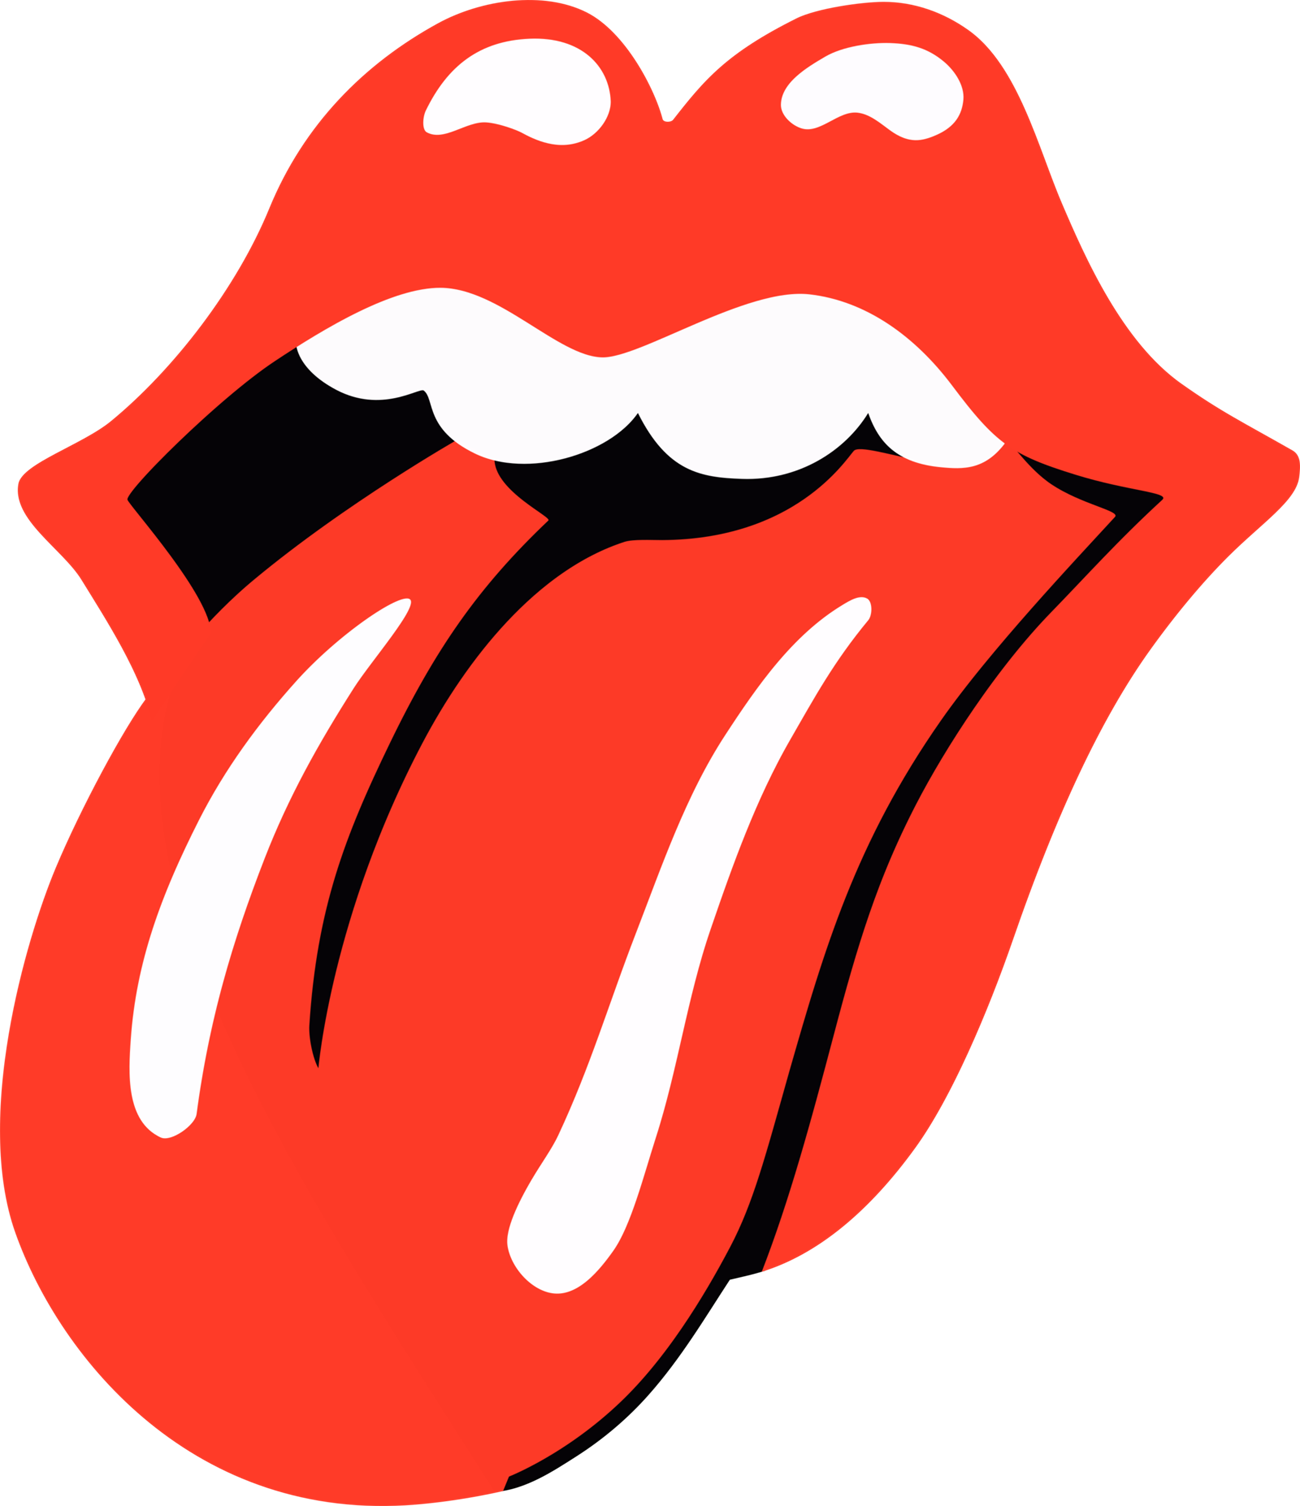 Tongue clip toddler. Rolling stones symbol choice